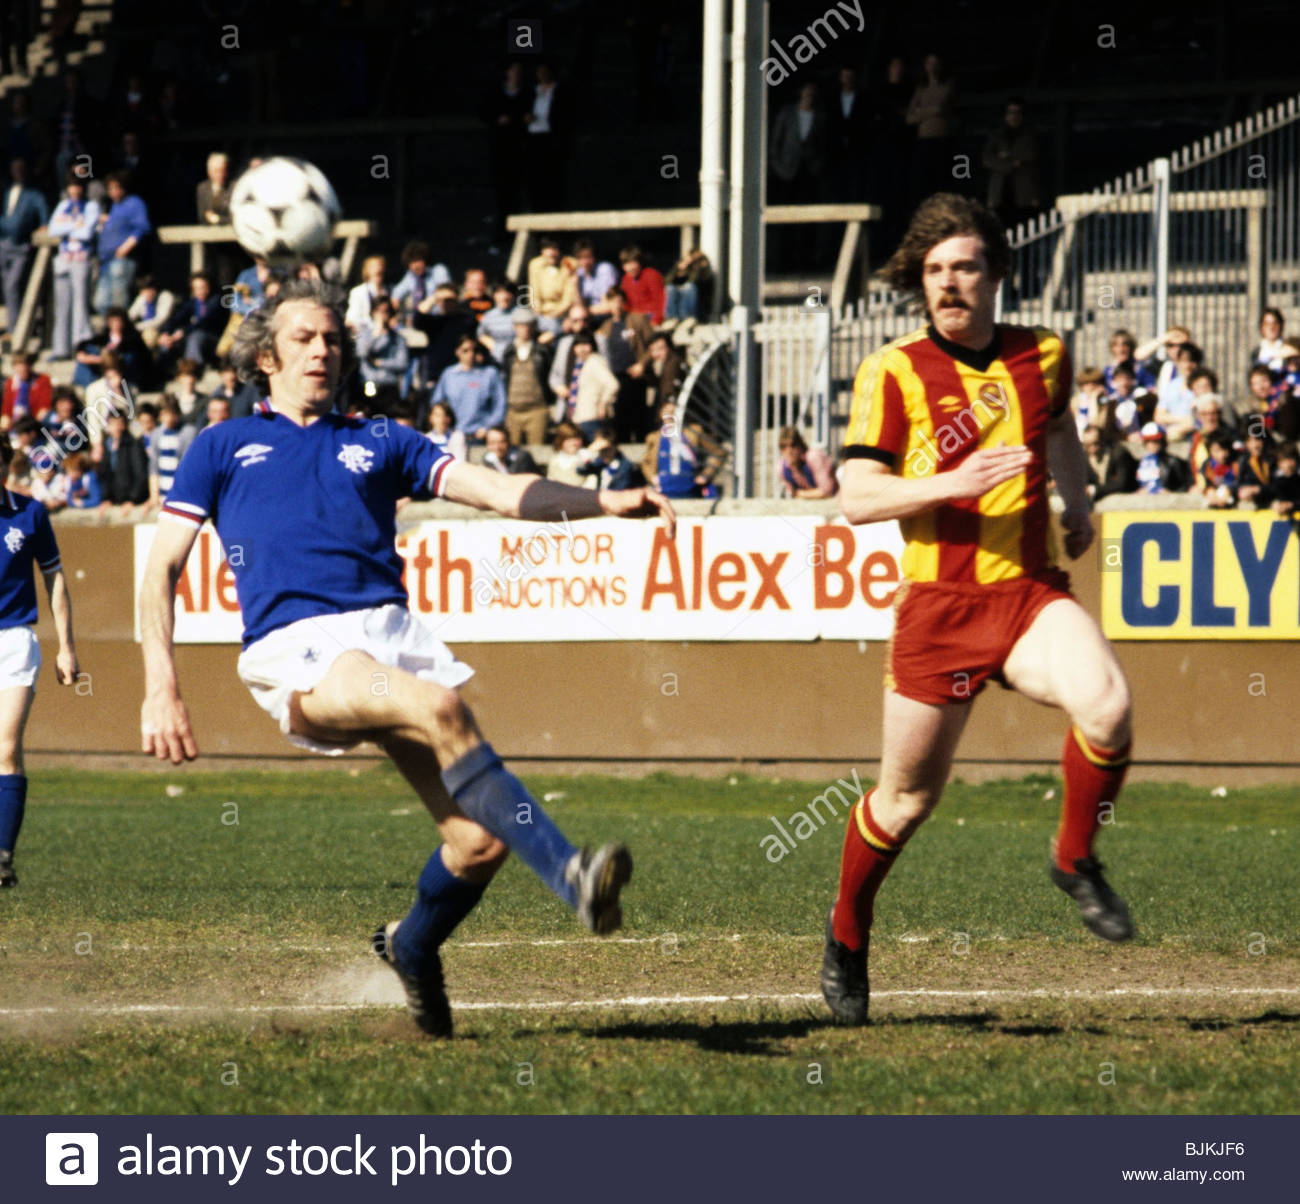 SEASON 1980/1981 PARTICK THISTLE v RANGERS FIRHILL - GLASGOW Colin Jackson (left) is shadowed by Tony Higgins. - Stock Image